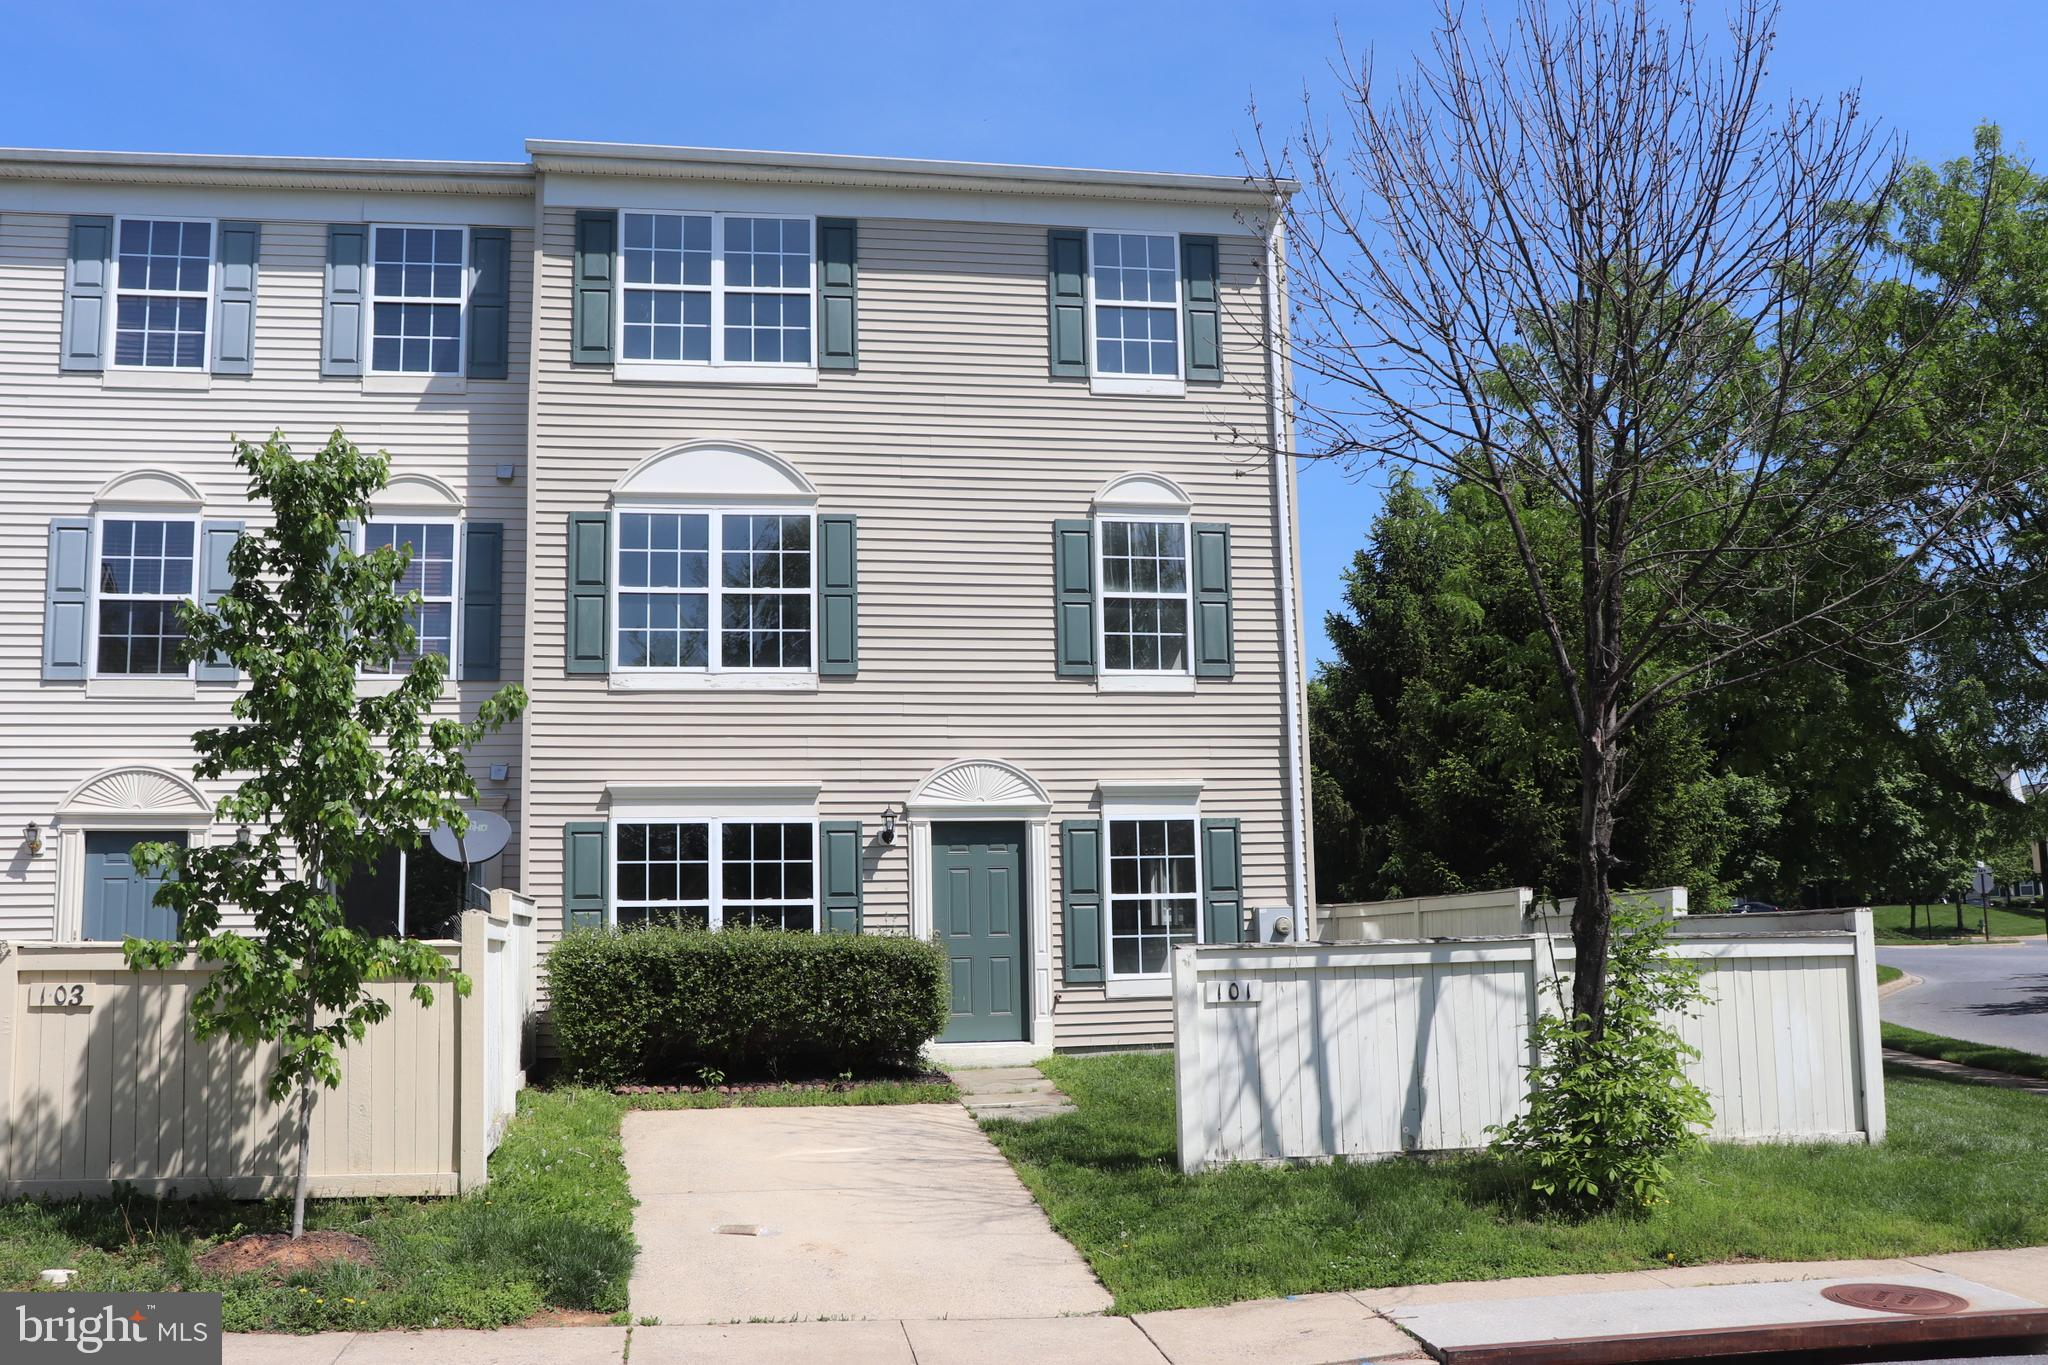 101 Whitestone Way, Frederick, MD, 21702